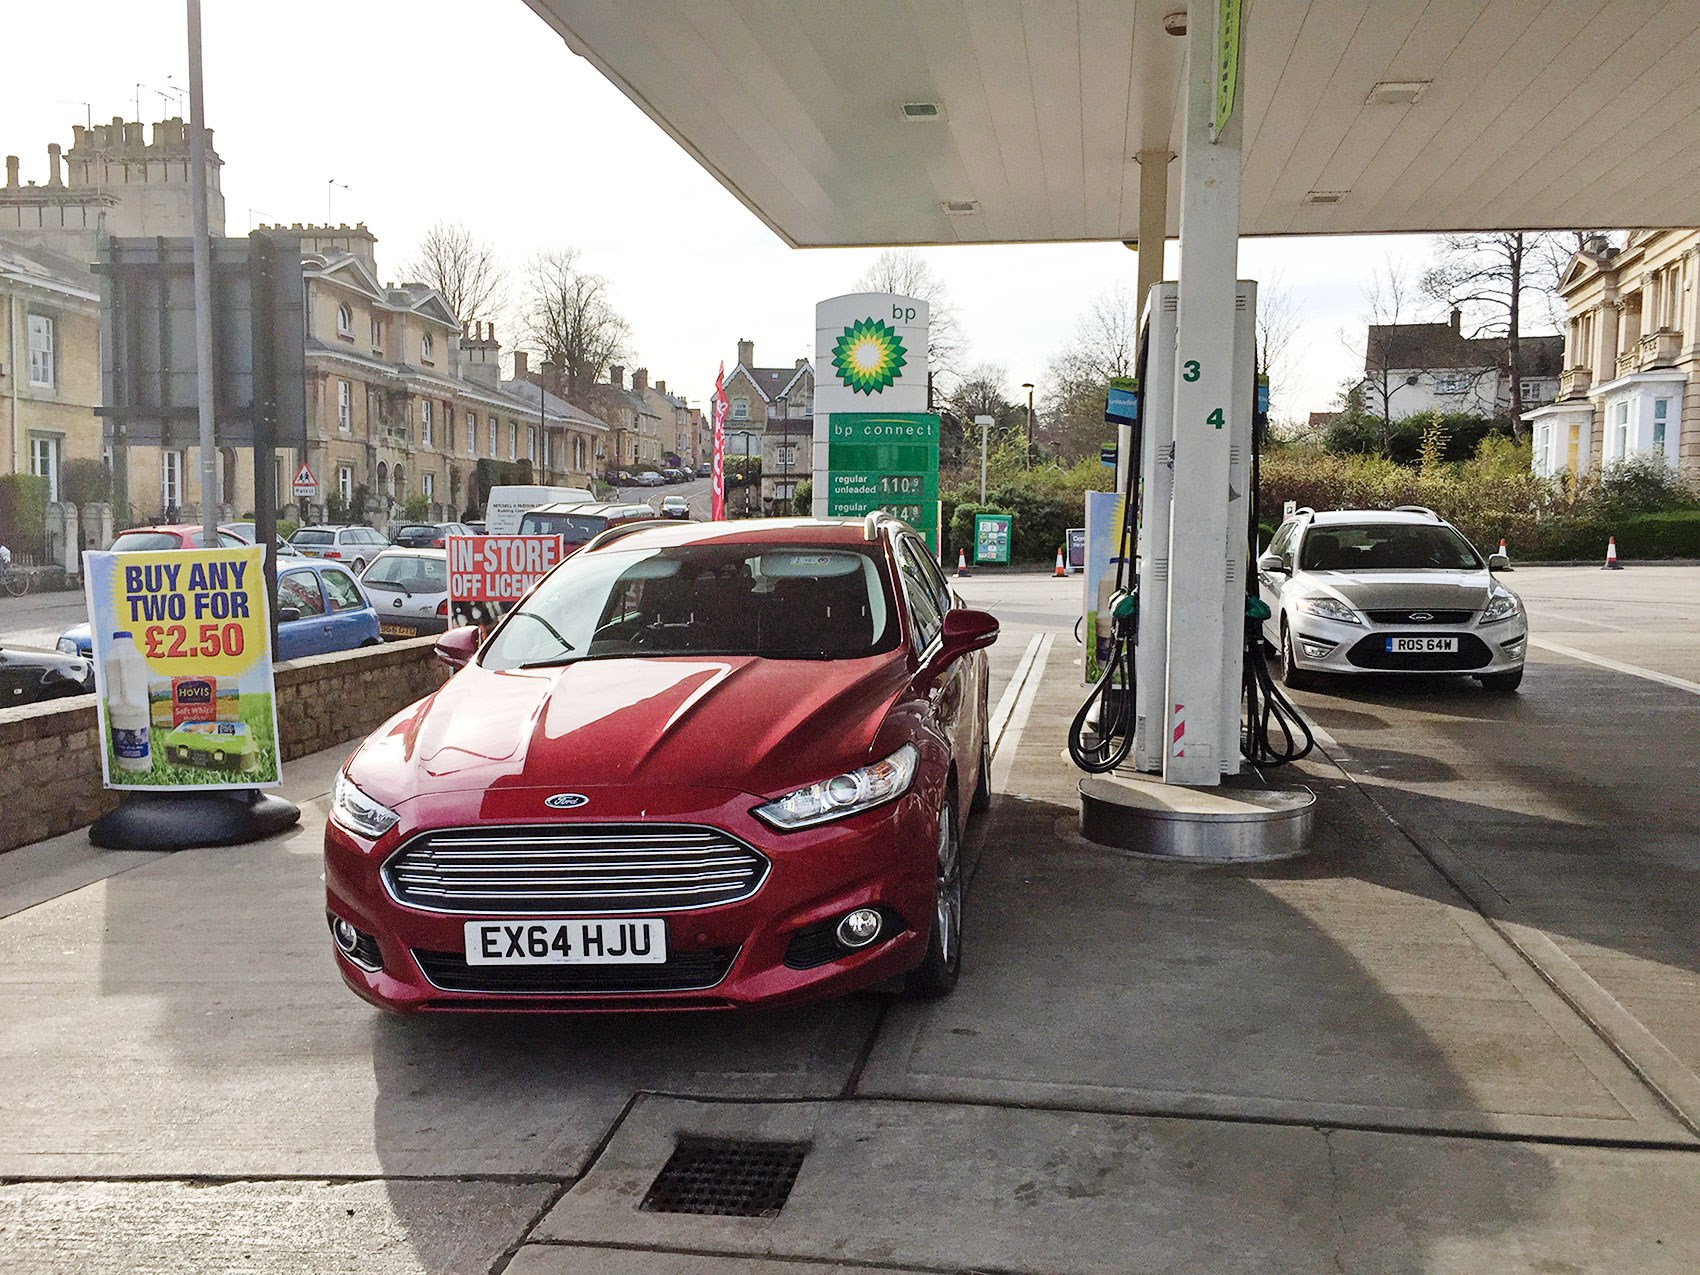 Ford Mondeo Estate 20 Tdci Titanium 2016 Long Term Test Review 1996 Starter Motor Schematic Diagram Mondeos Old And New Fill Up Fuel Appetite Variable Chris Chilton Cars Cabin Of Our